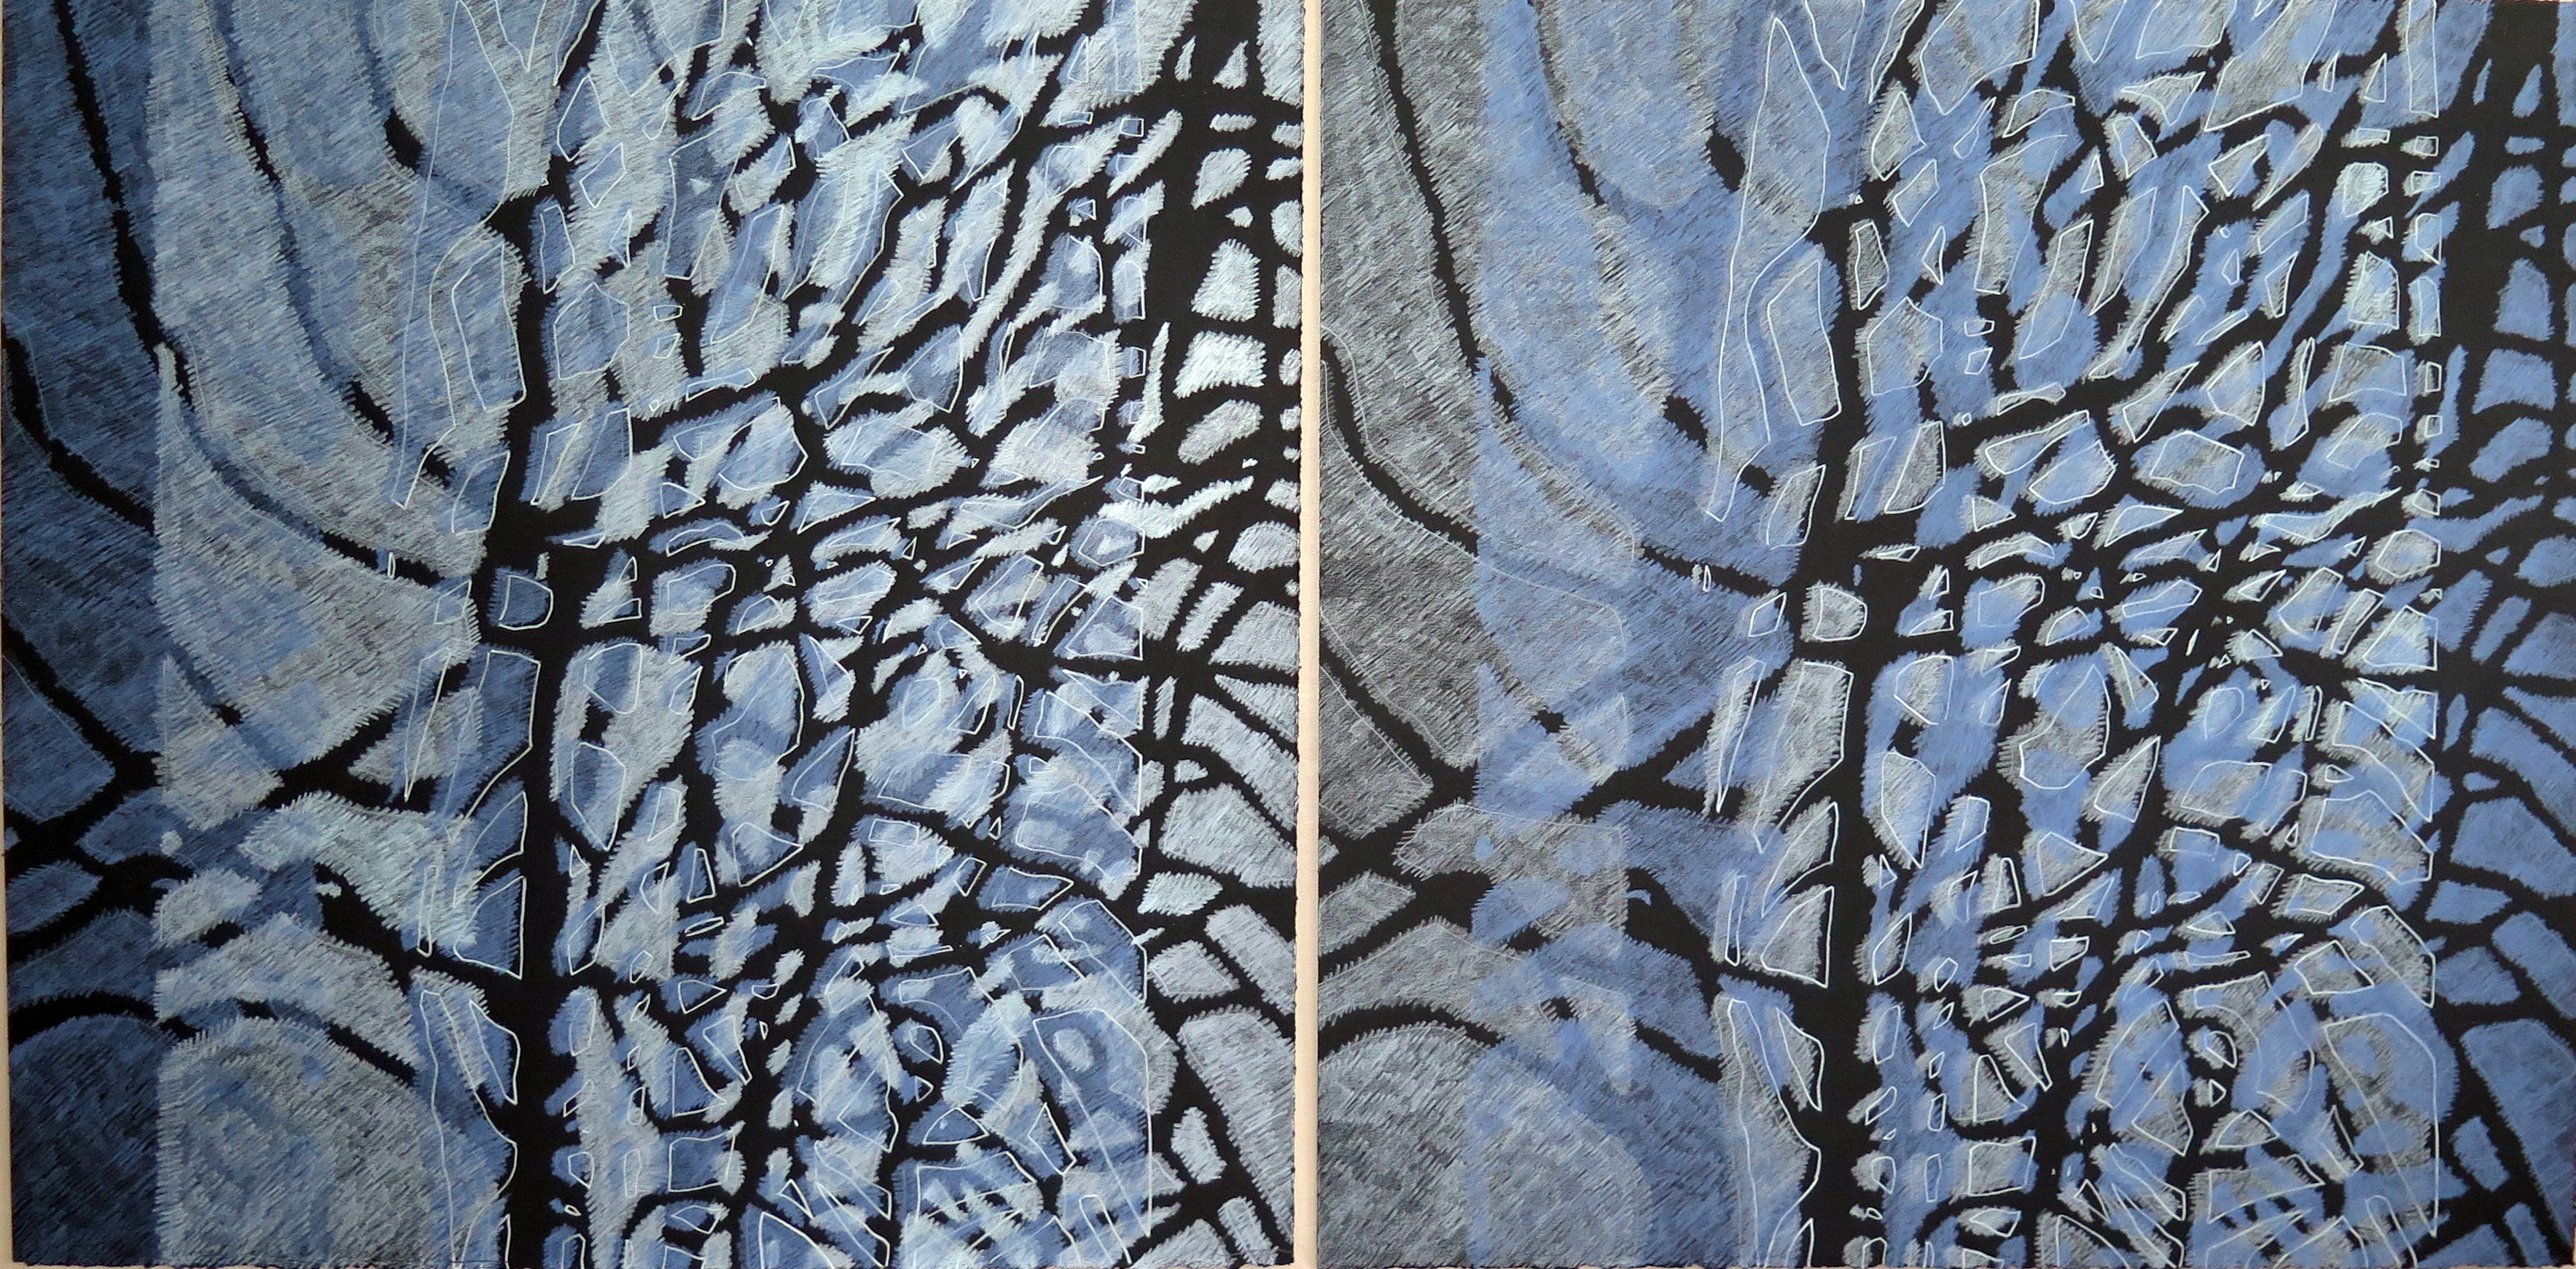 Lyn Horton Shift Series, 2019-20, periwinkle and sky blue light, sky blue light and perwinkle pair, 2020, 22.25 in h x 45 in w, colored pencil on black rag paper